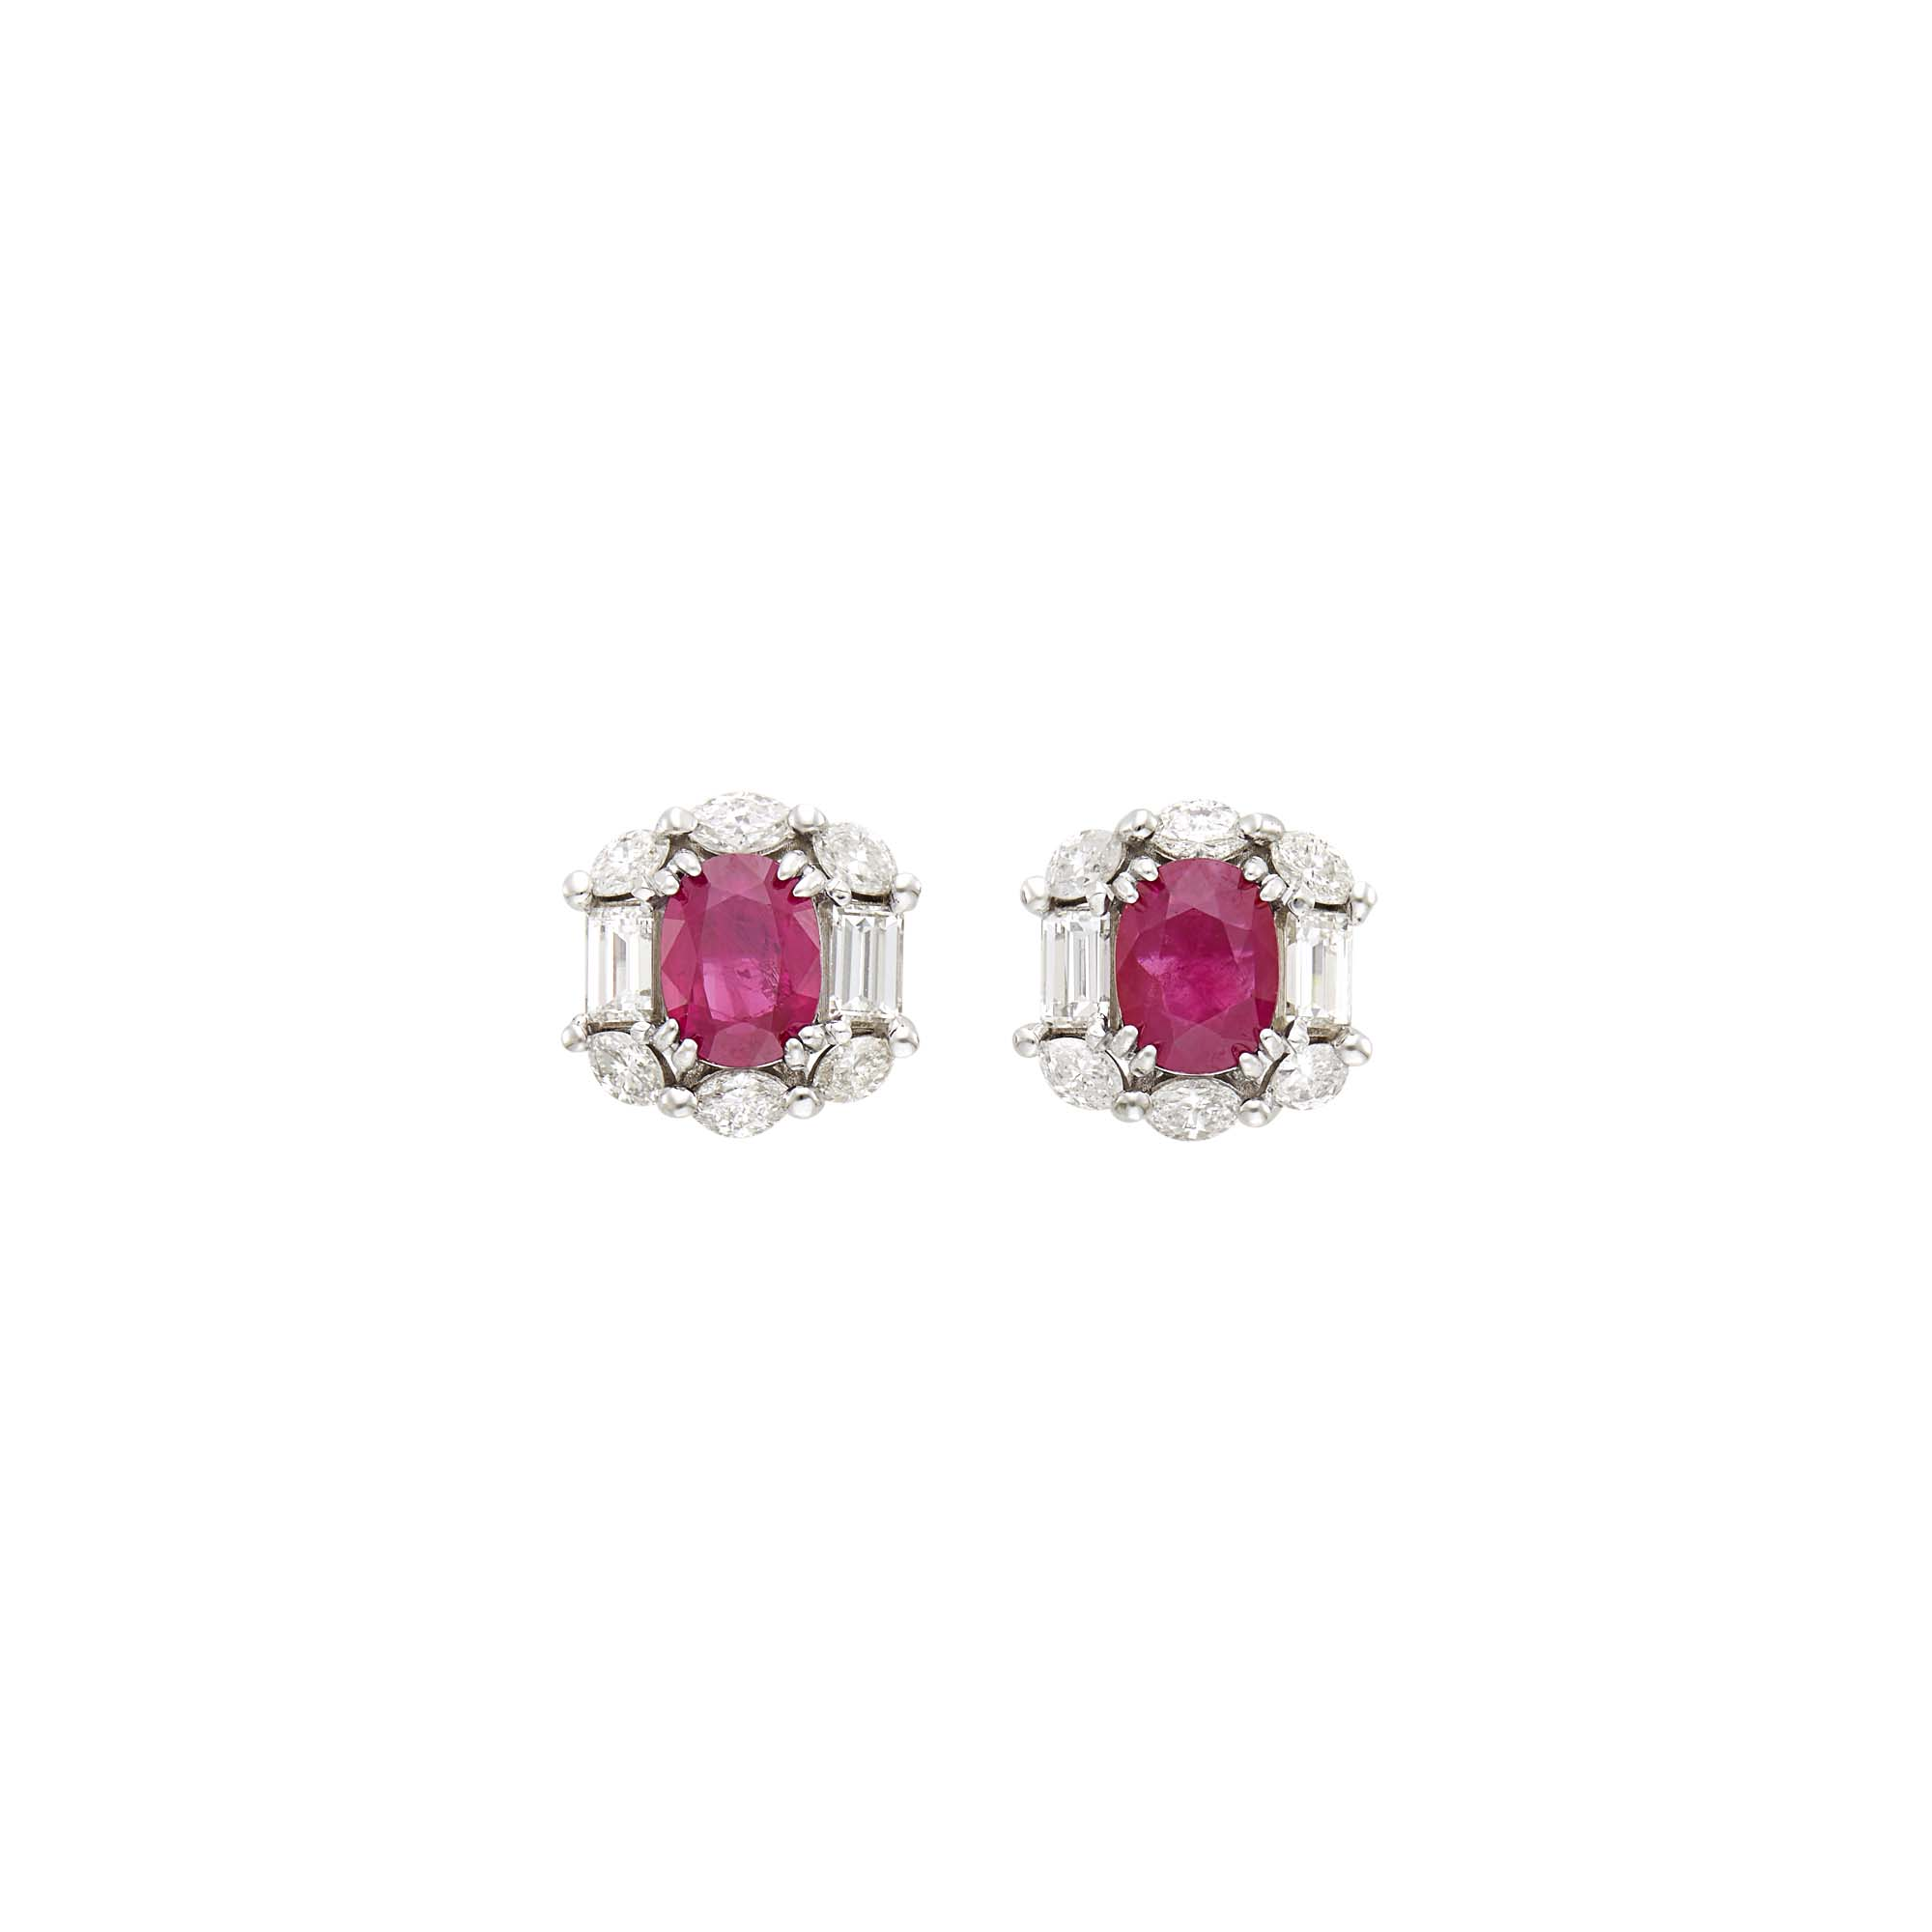 Lot image - Pair of White Gold, Ruby and Diamond Earrings